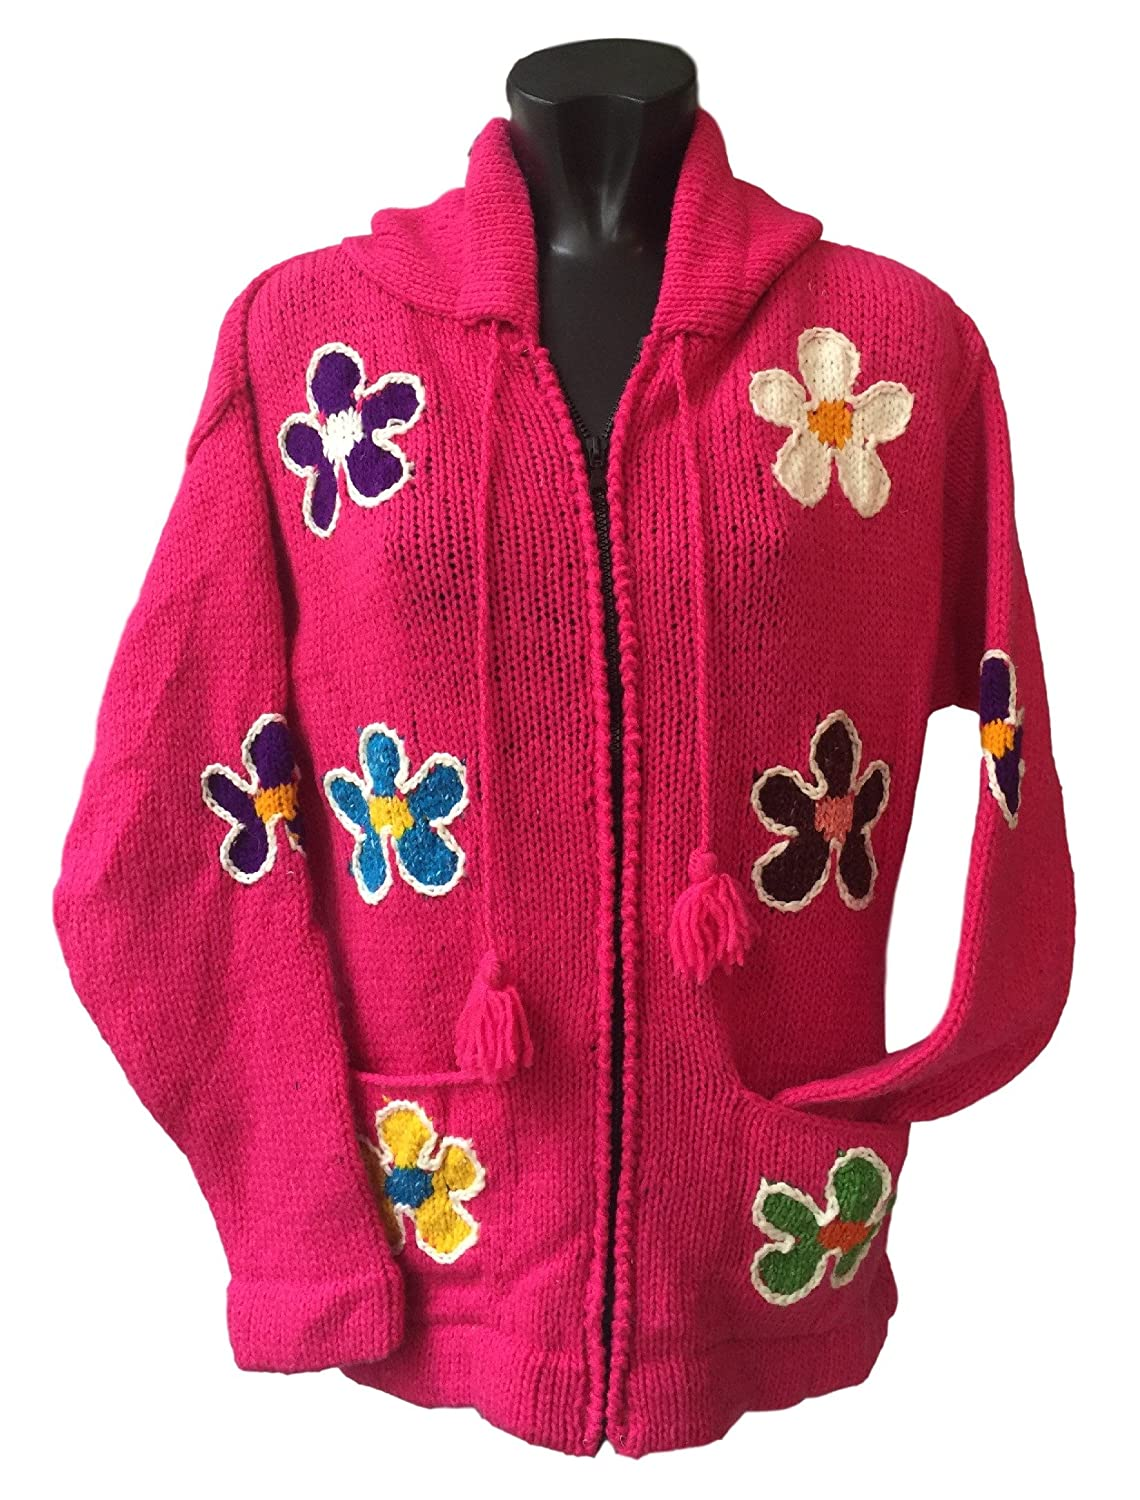 NEW Flower Hoody Wool Jacket Knitted Ecuador Fair Trade Warm Coat Thick Jumper NWT